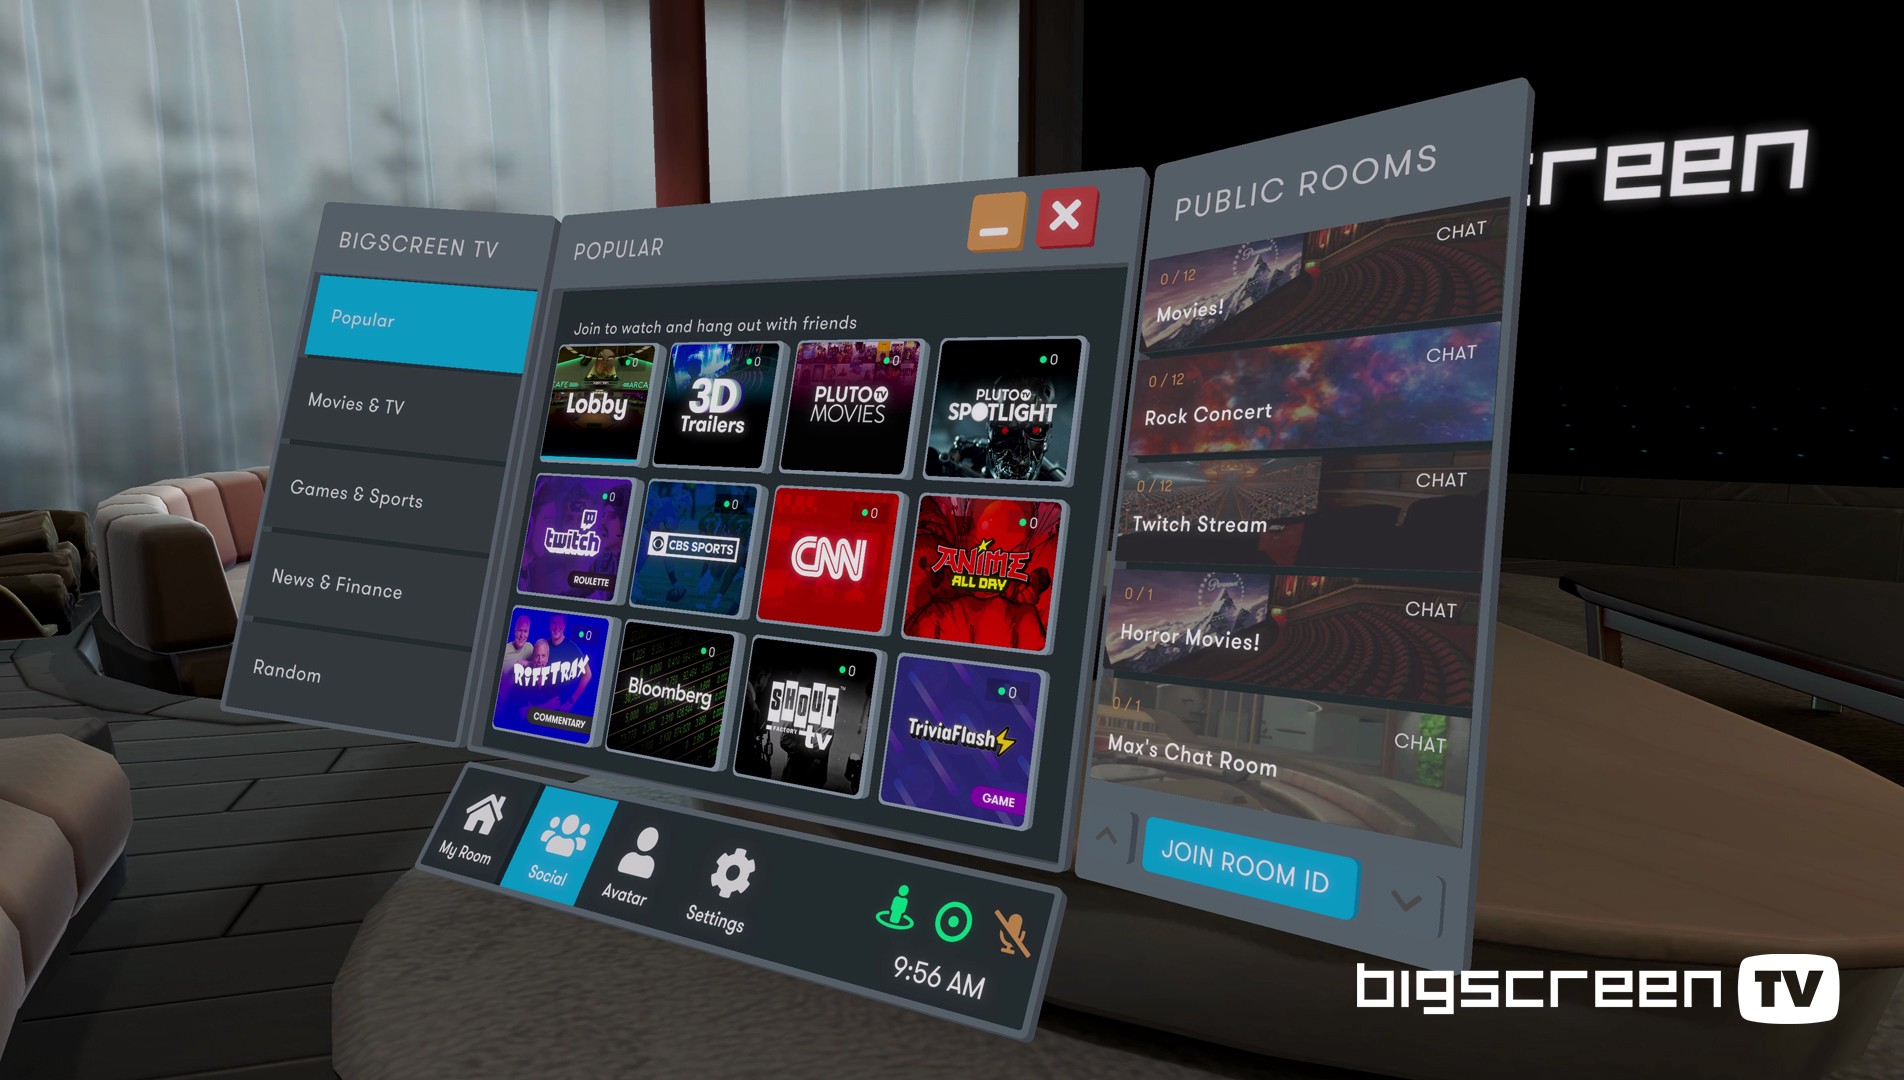 bbd - Experience The Cinema and More in Virtual Reality - Anywhere, Anytime